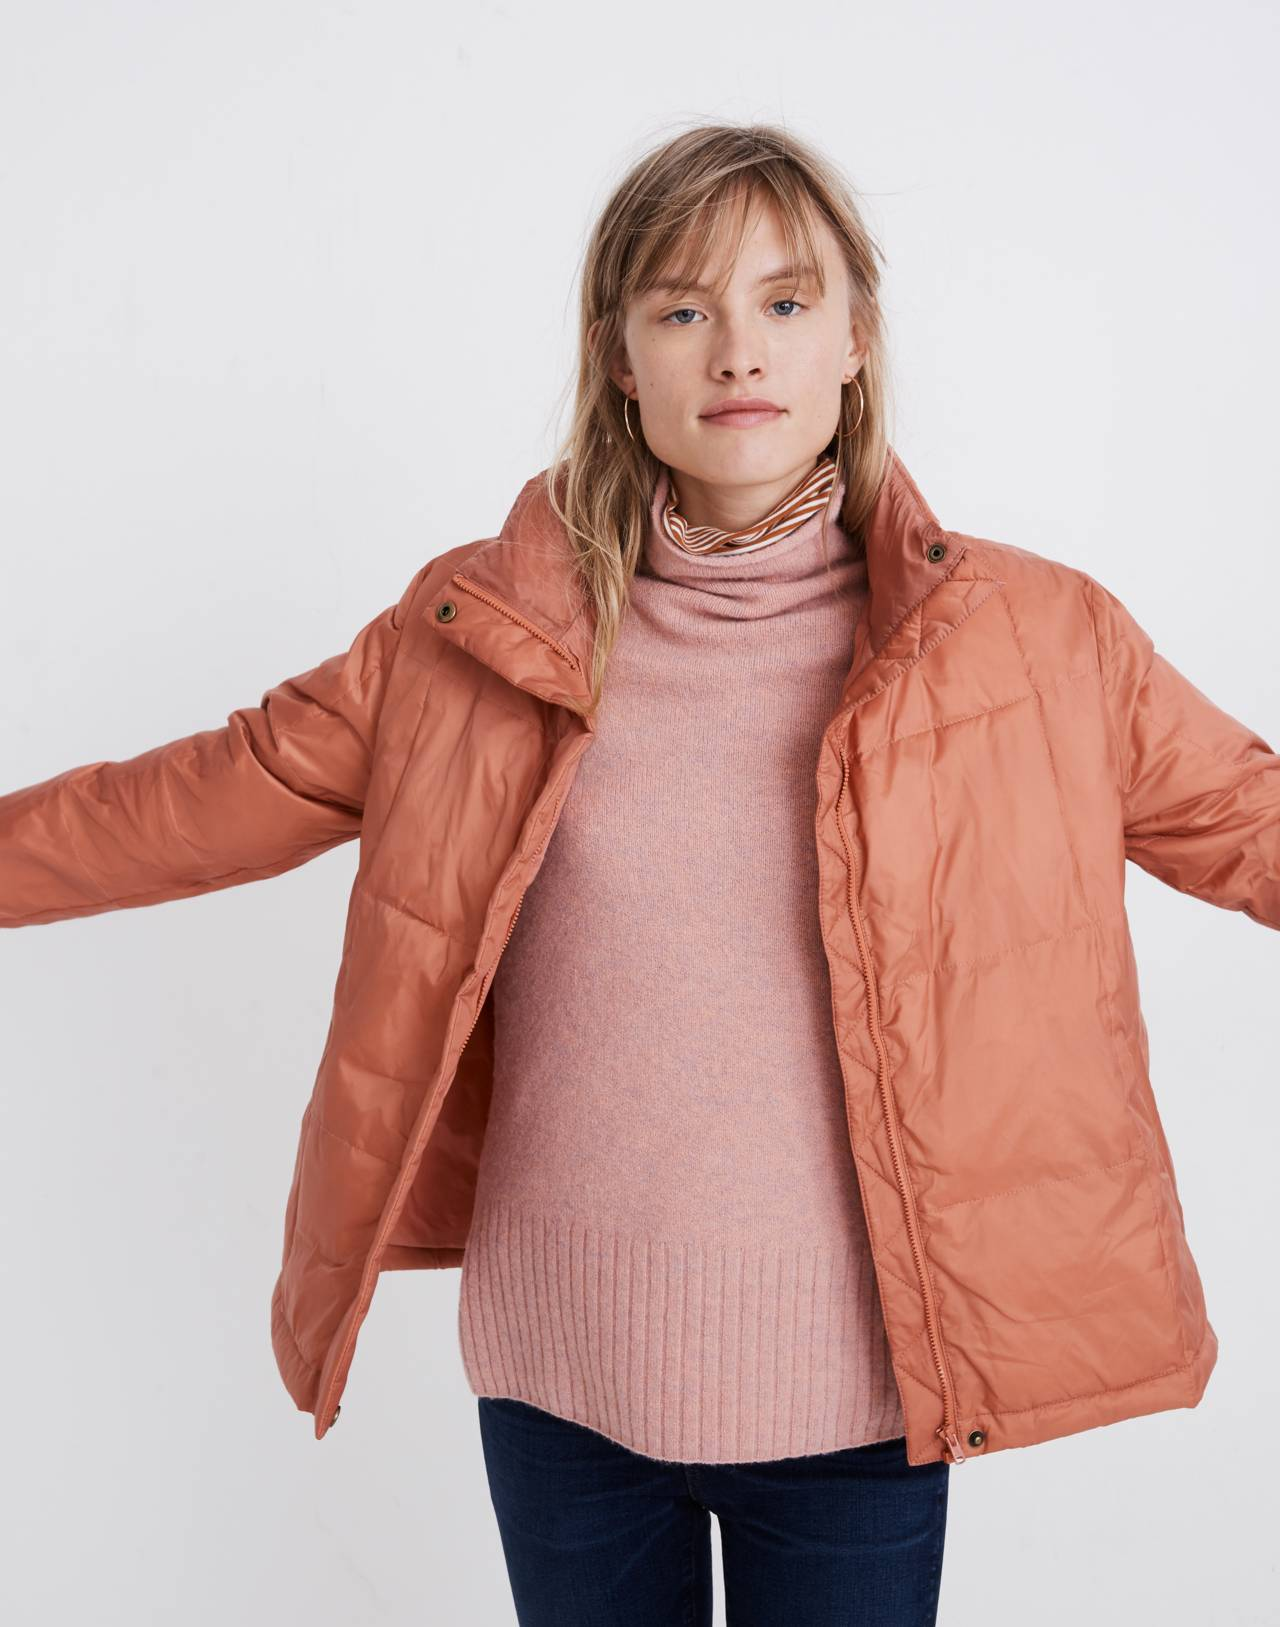 Travel Buddy Packable Puffer Jacket in sweet dahlia image 1